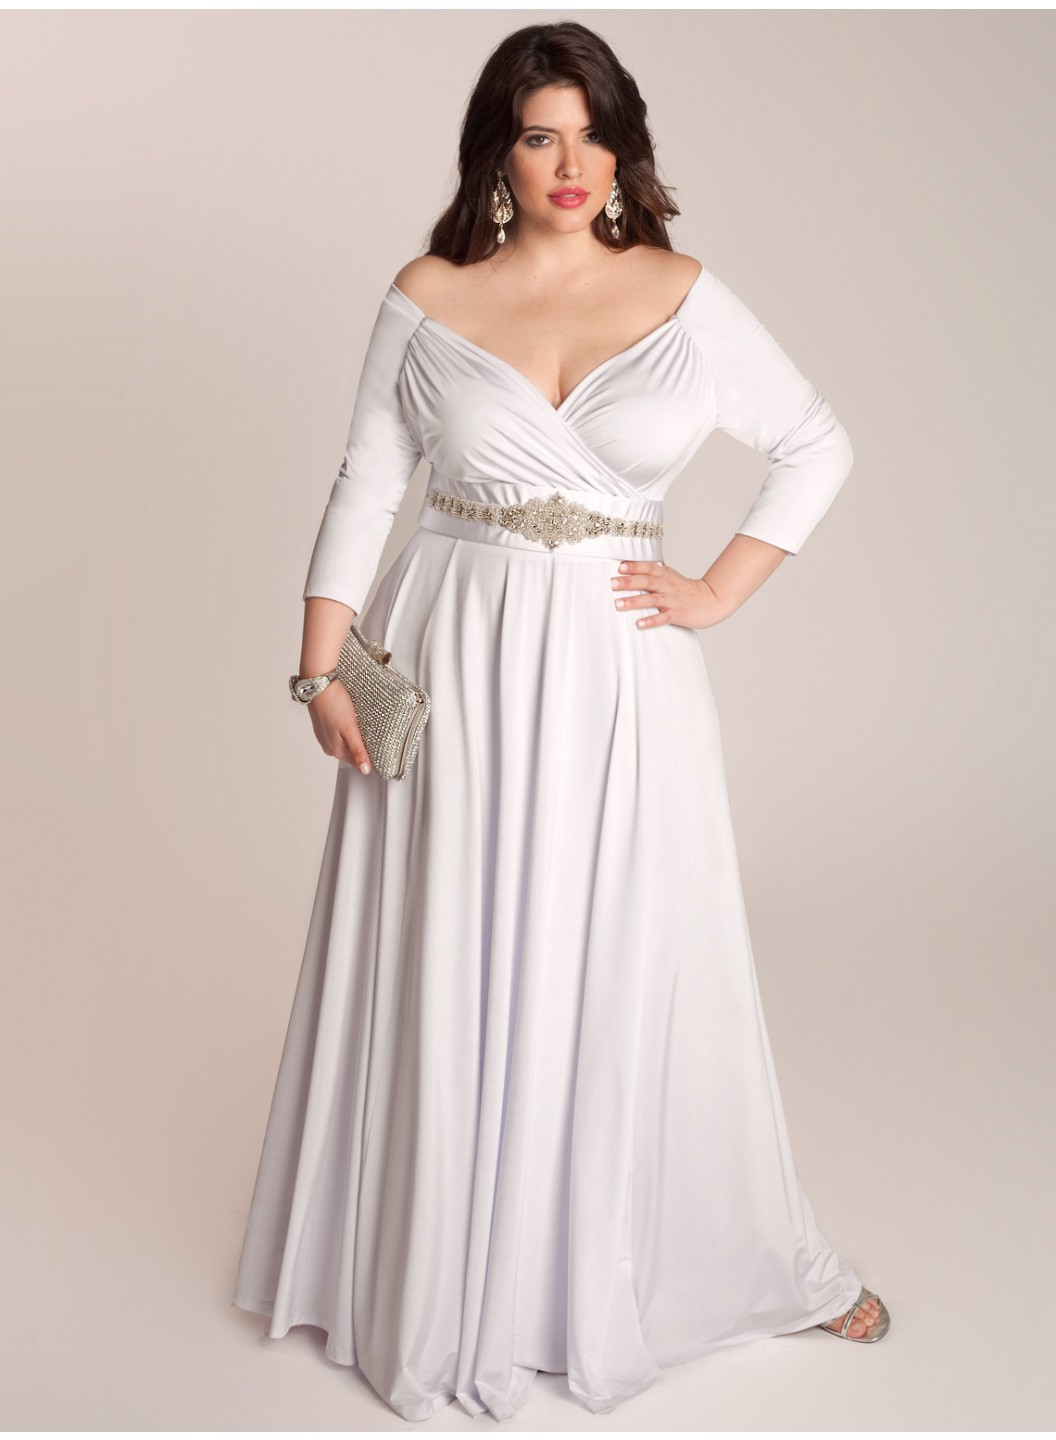 Plus size women christmas party dresses collection for for Plus size wedding dresses online usa